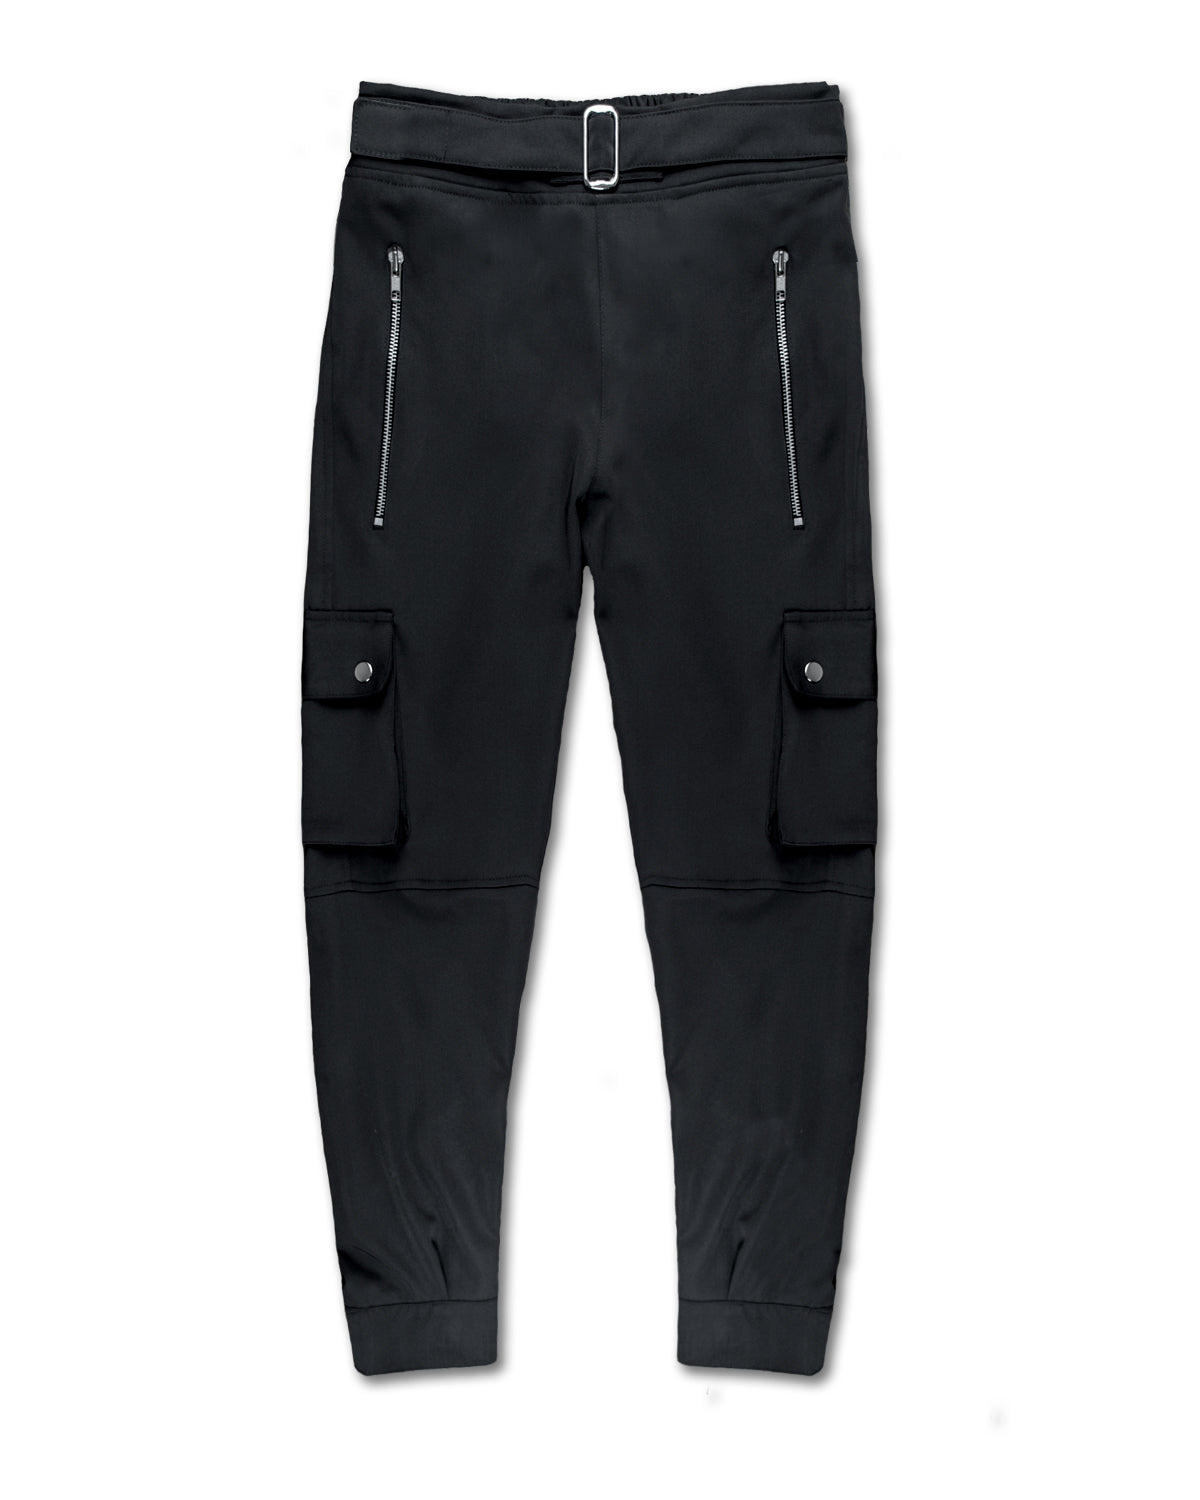 Nomad Pants - Black